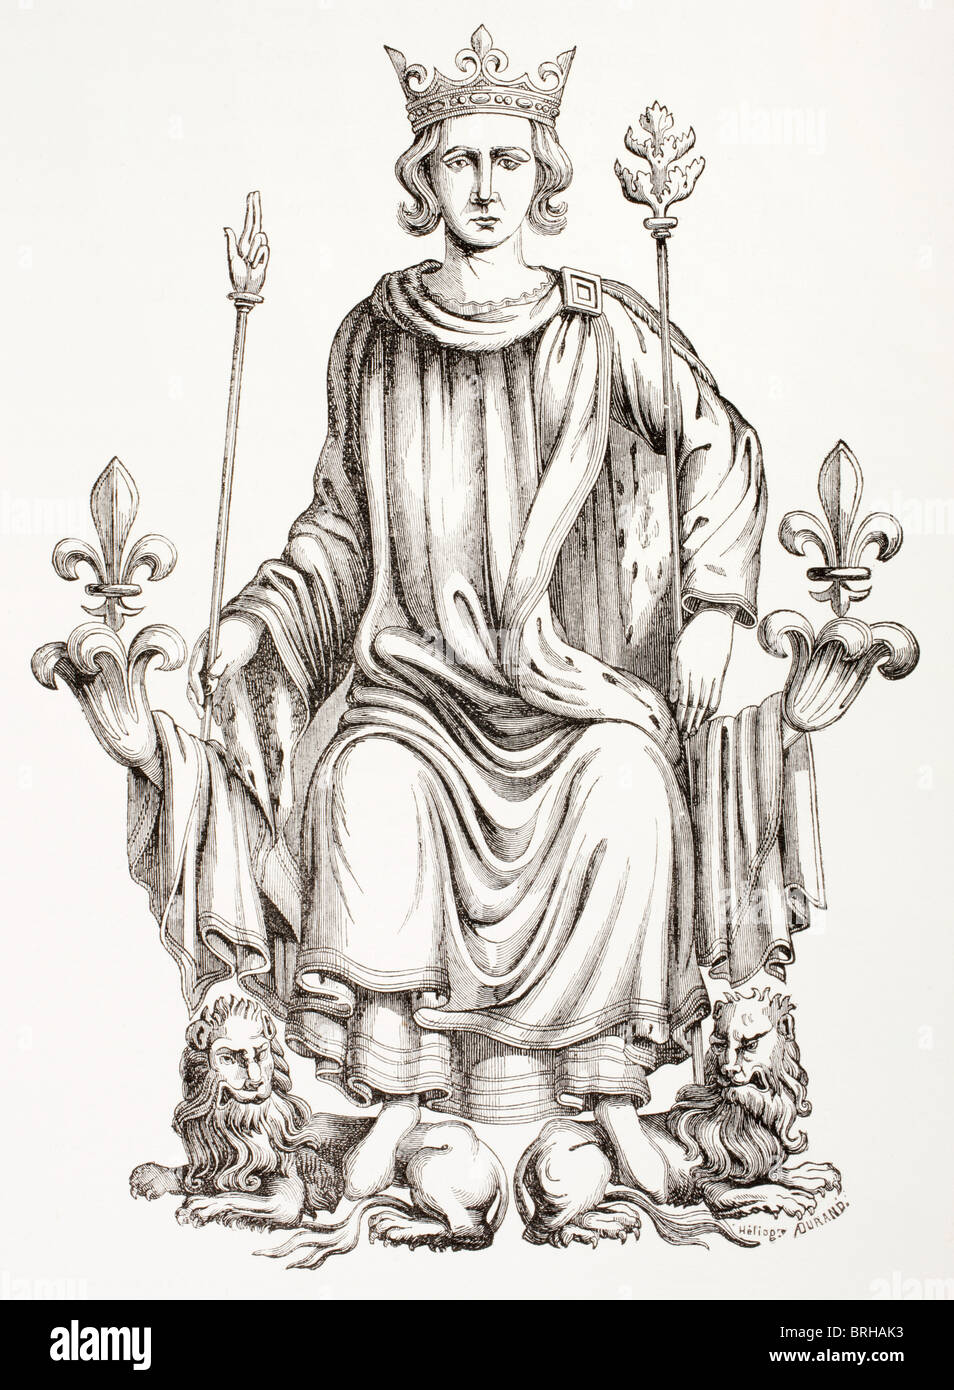 King Charles VI of France, 1369 - 1422, on his throne. Known as The Beloved and The Mad. - Stock Image